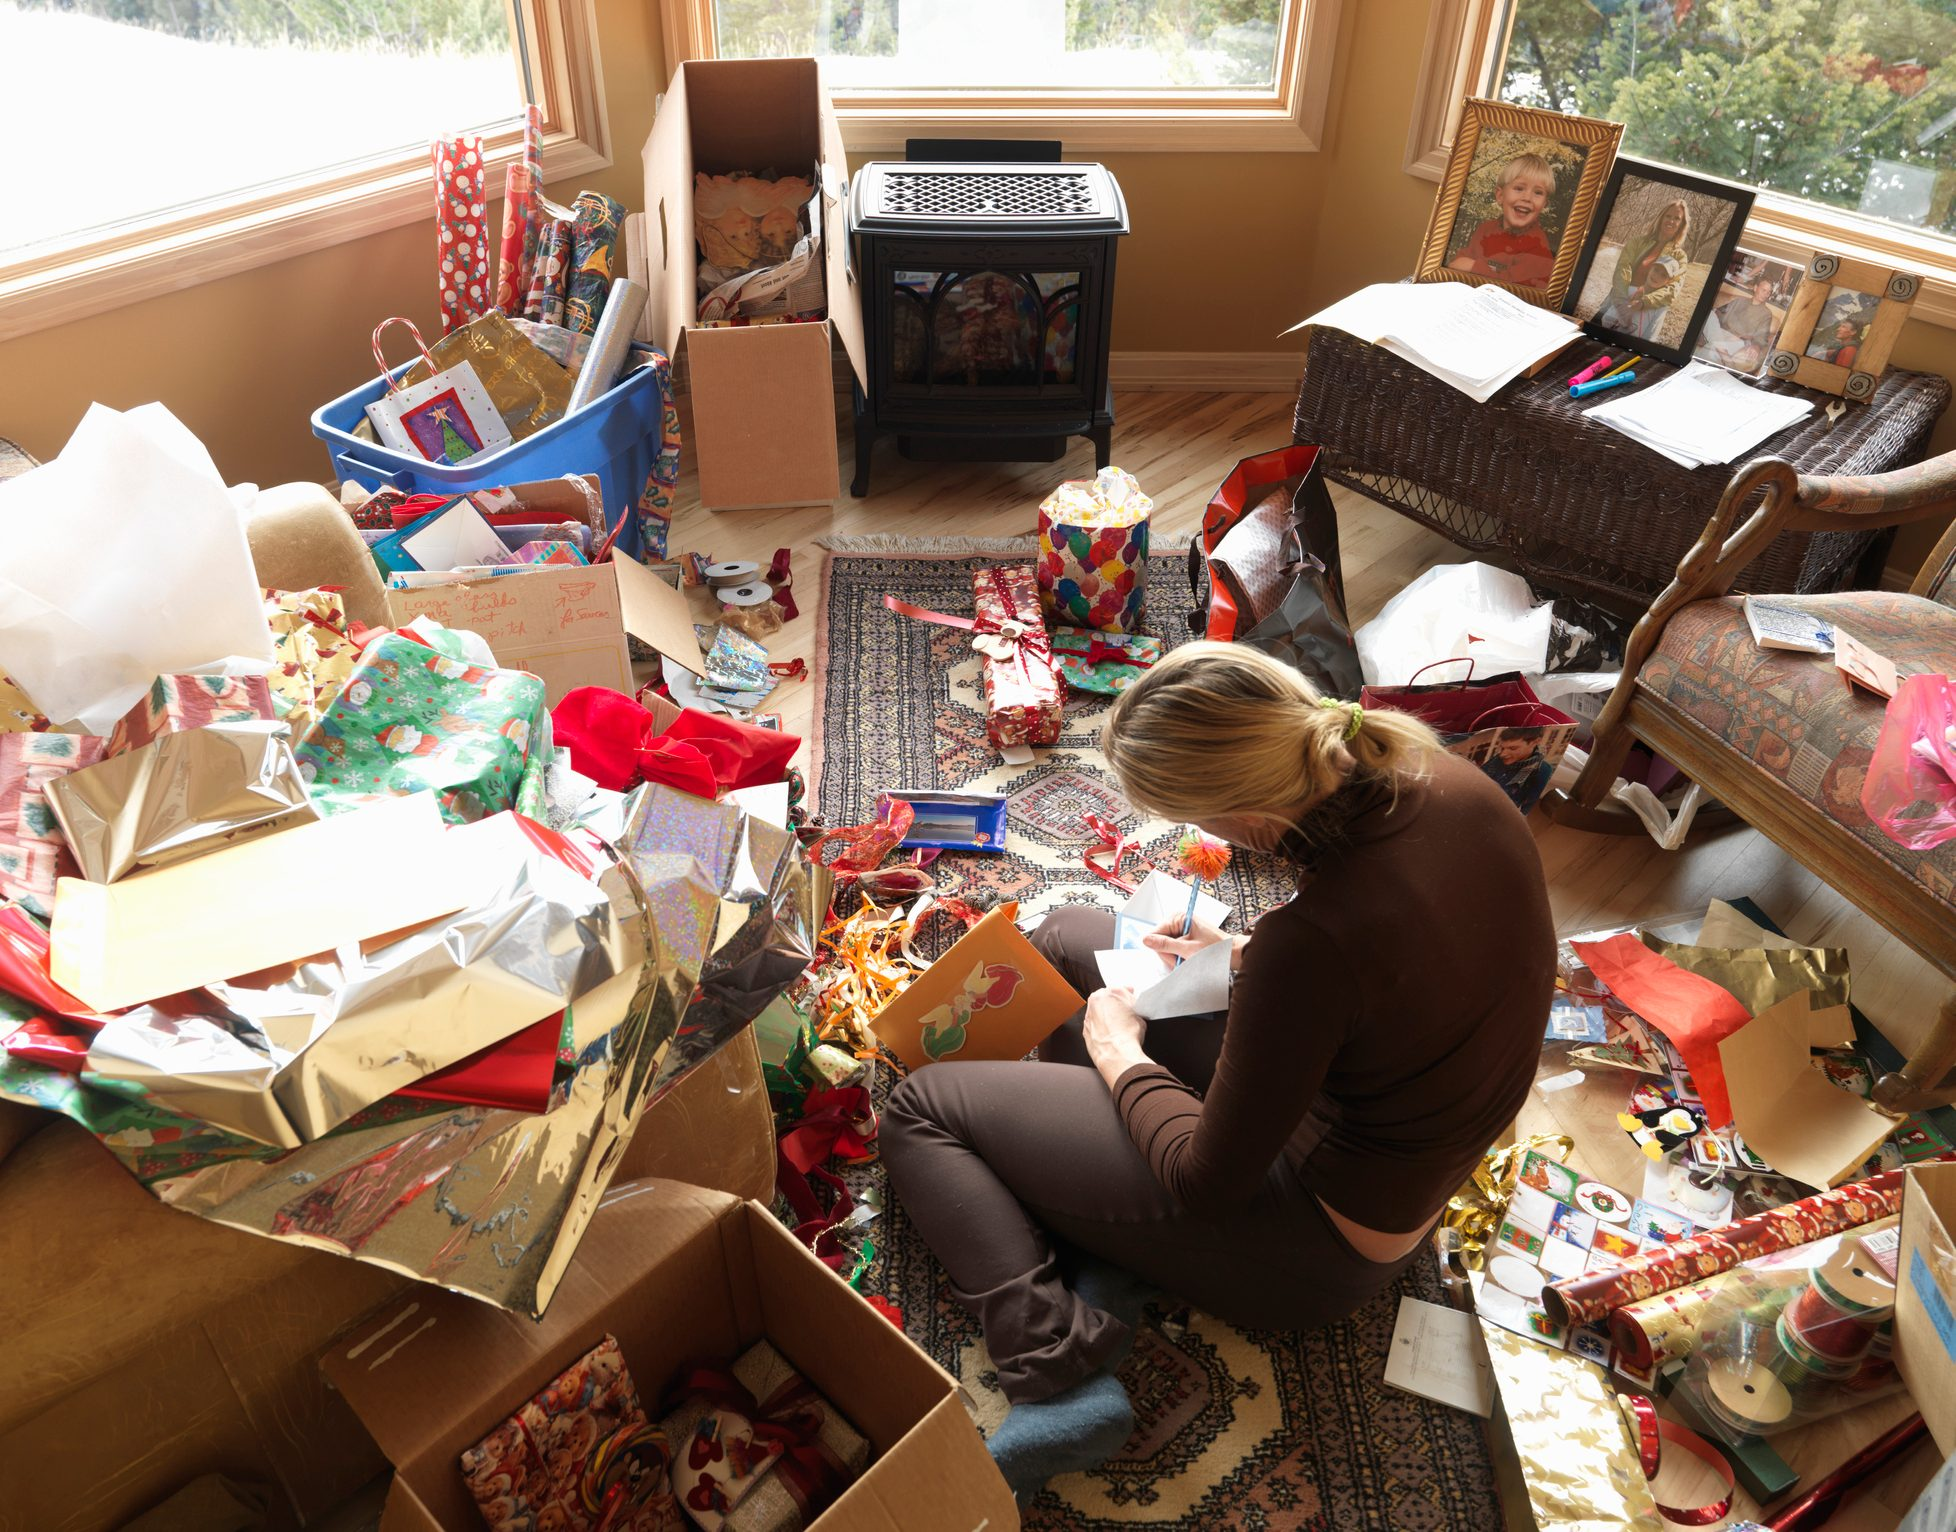 Woman sitting in living room writing on Christmas cards, elevated view